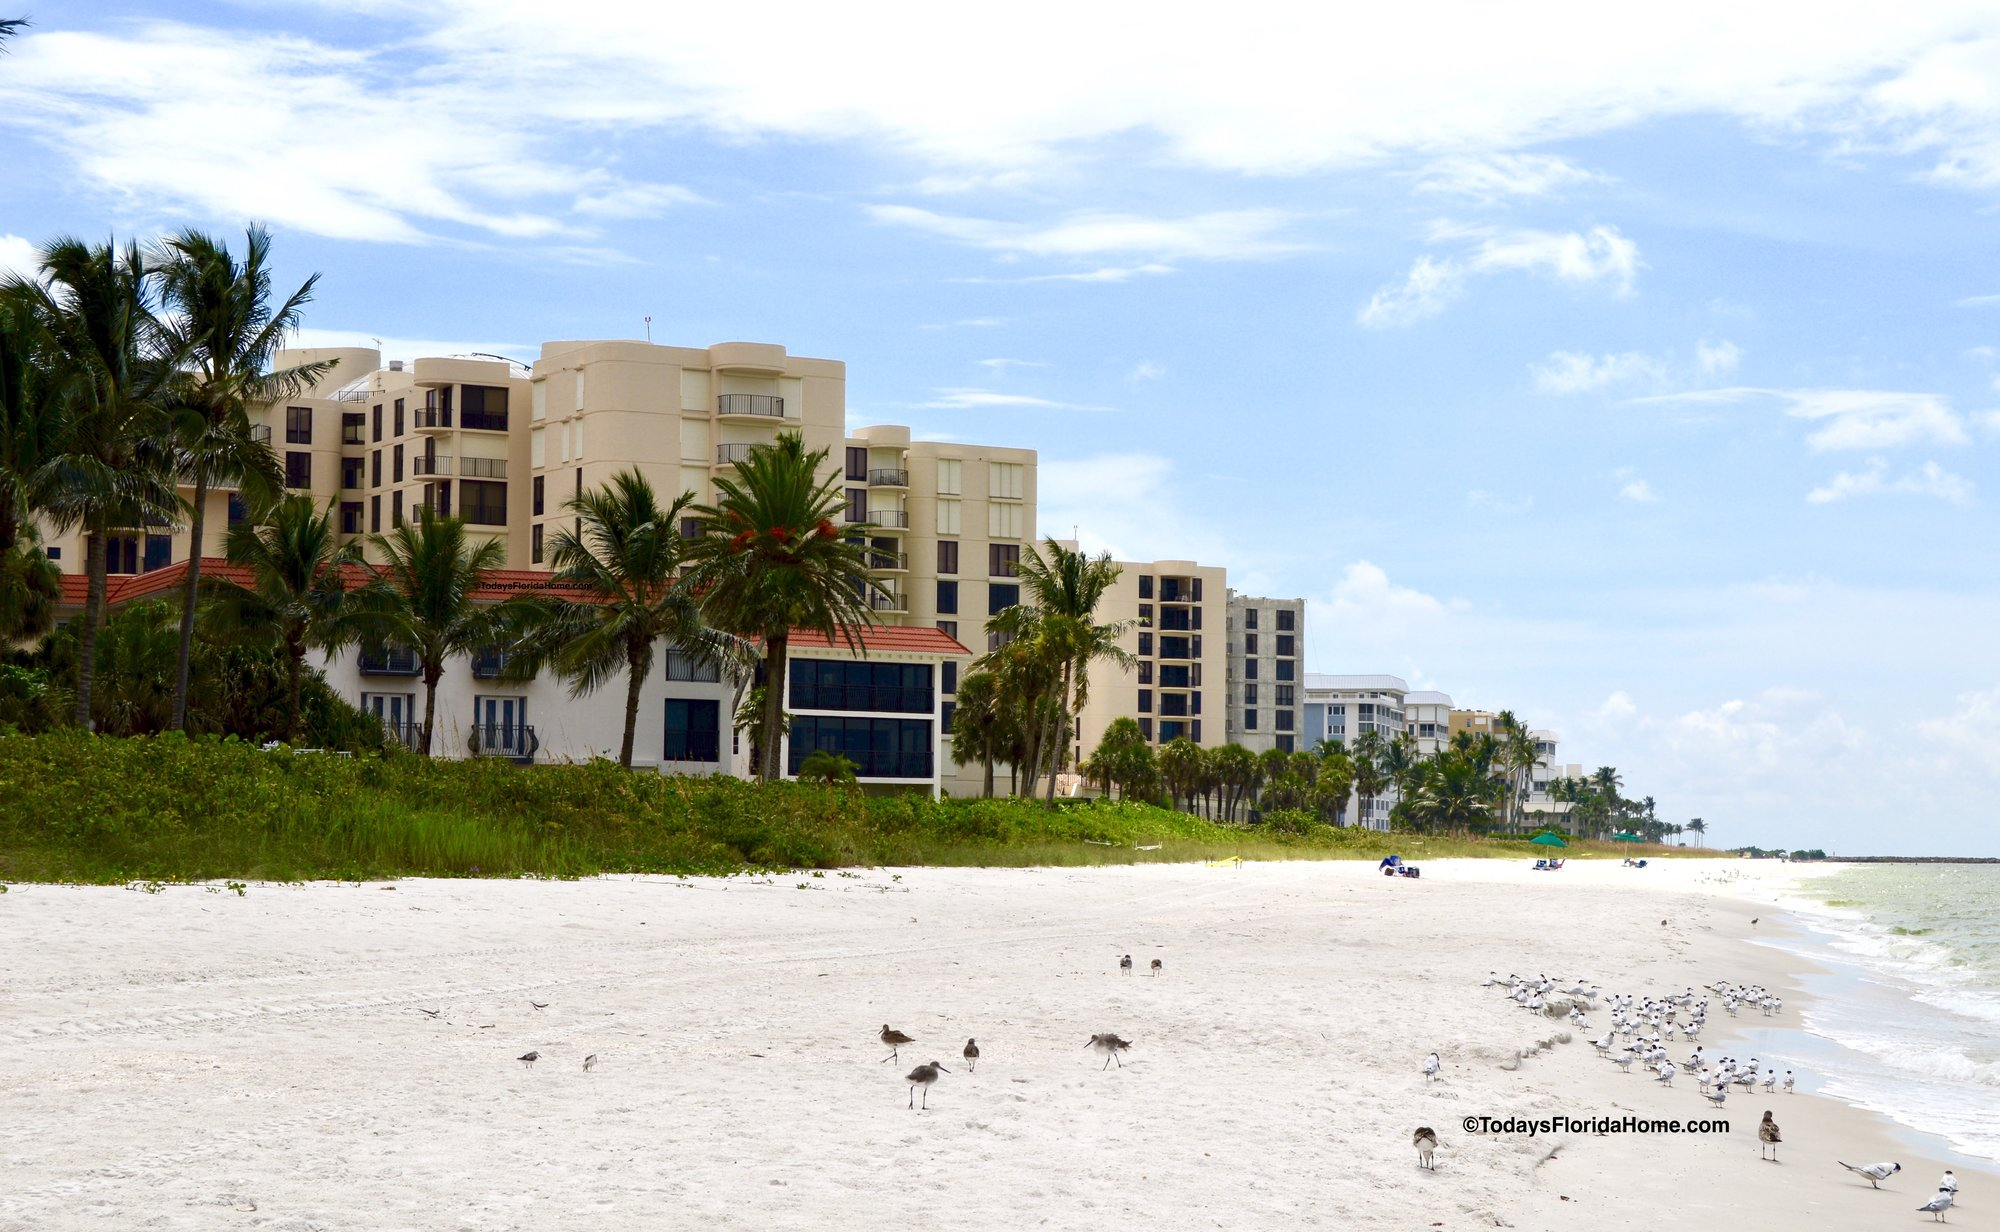 Coquina Sands Beachfront Condos, Coquina Sands, Gulf Shore Coquina Sands, Gulf Shore, Naples Beachfront, Beachfront Condos Naples, Florida Beachfront Condos, Naples Florida Beach Condos, Beachfront Florida, Southwest Florida Beachfront Condos